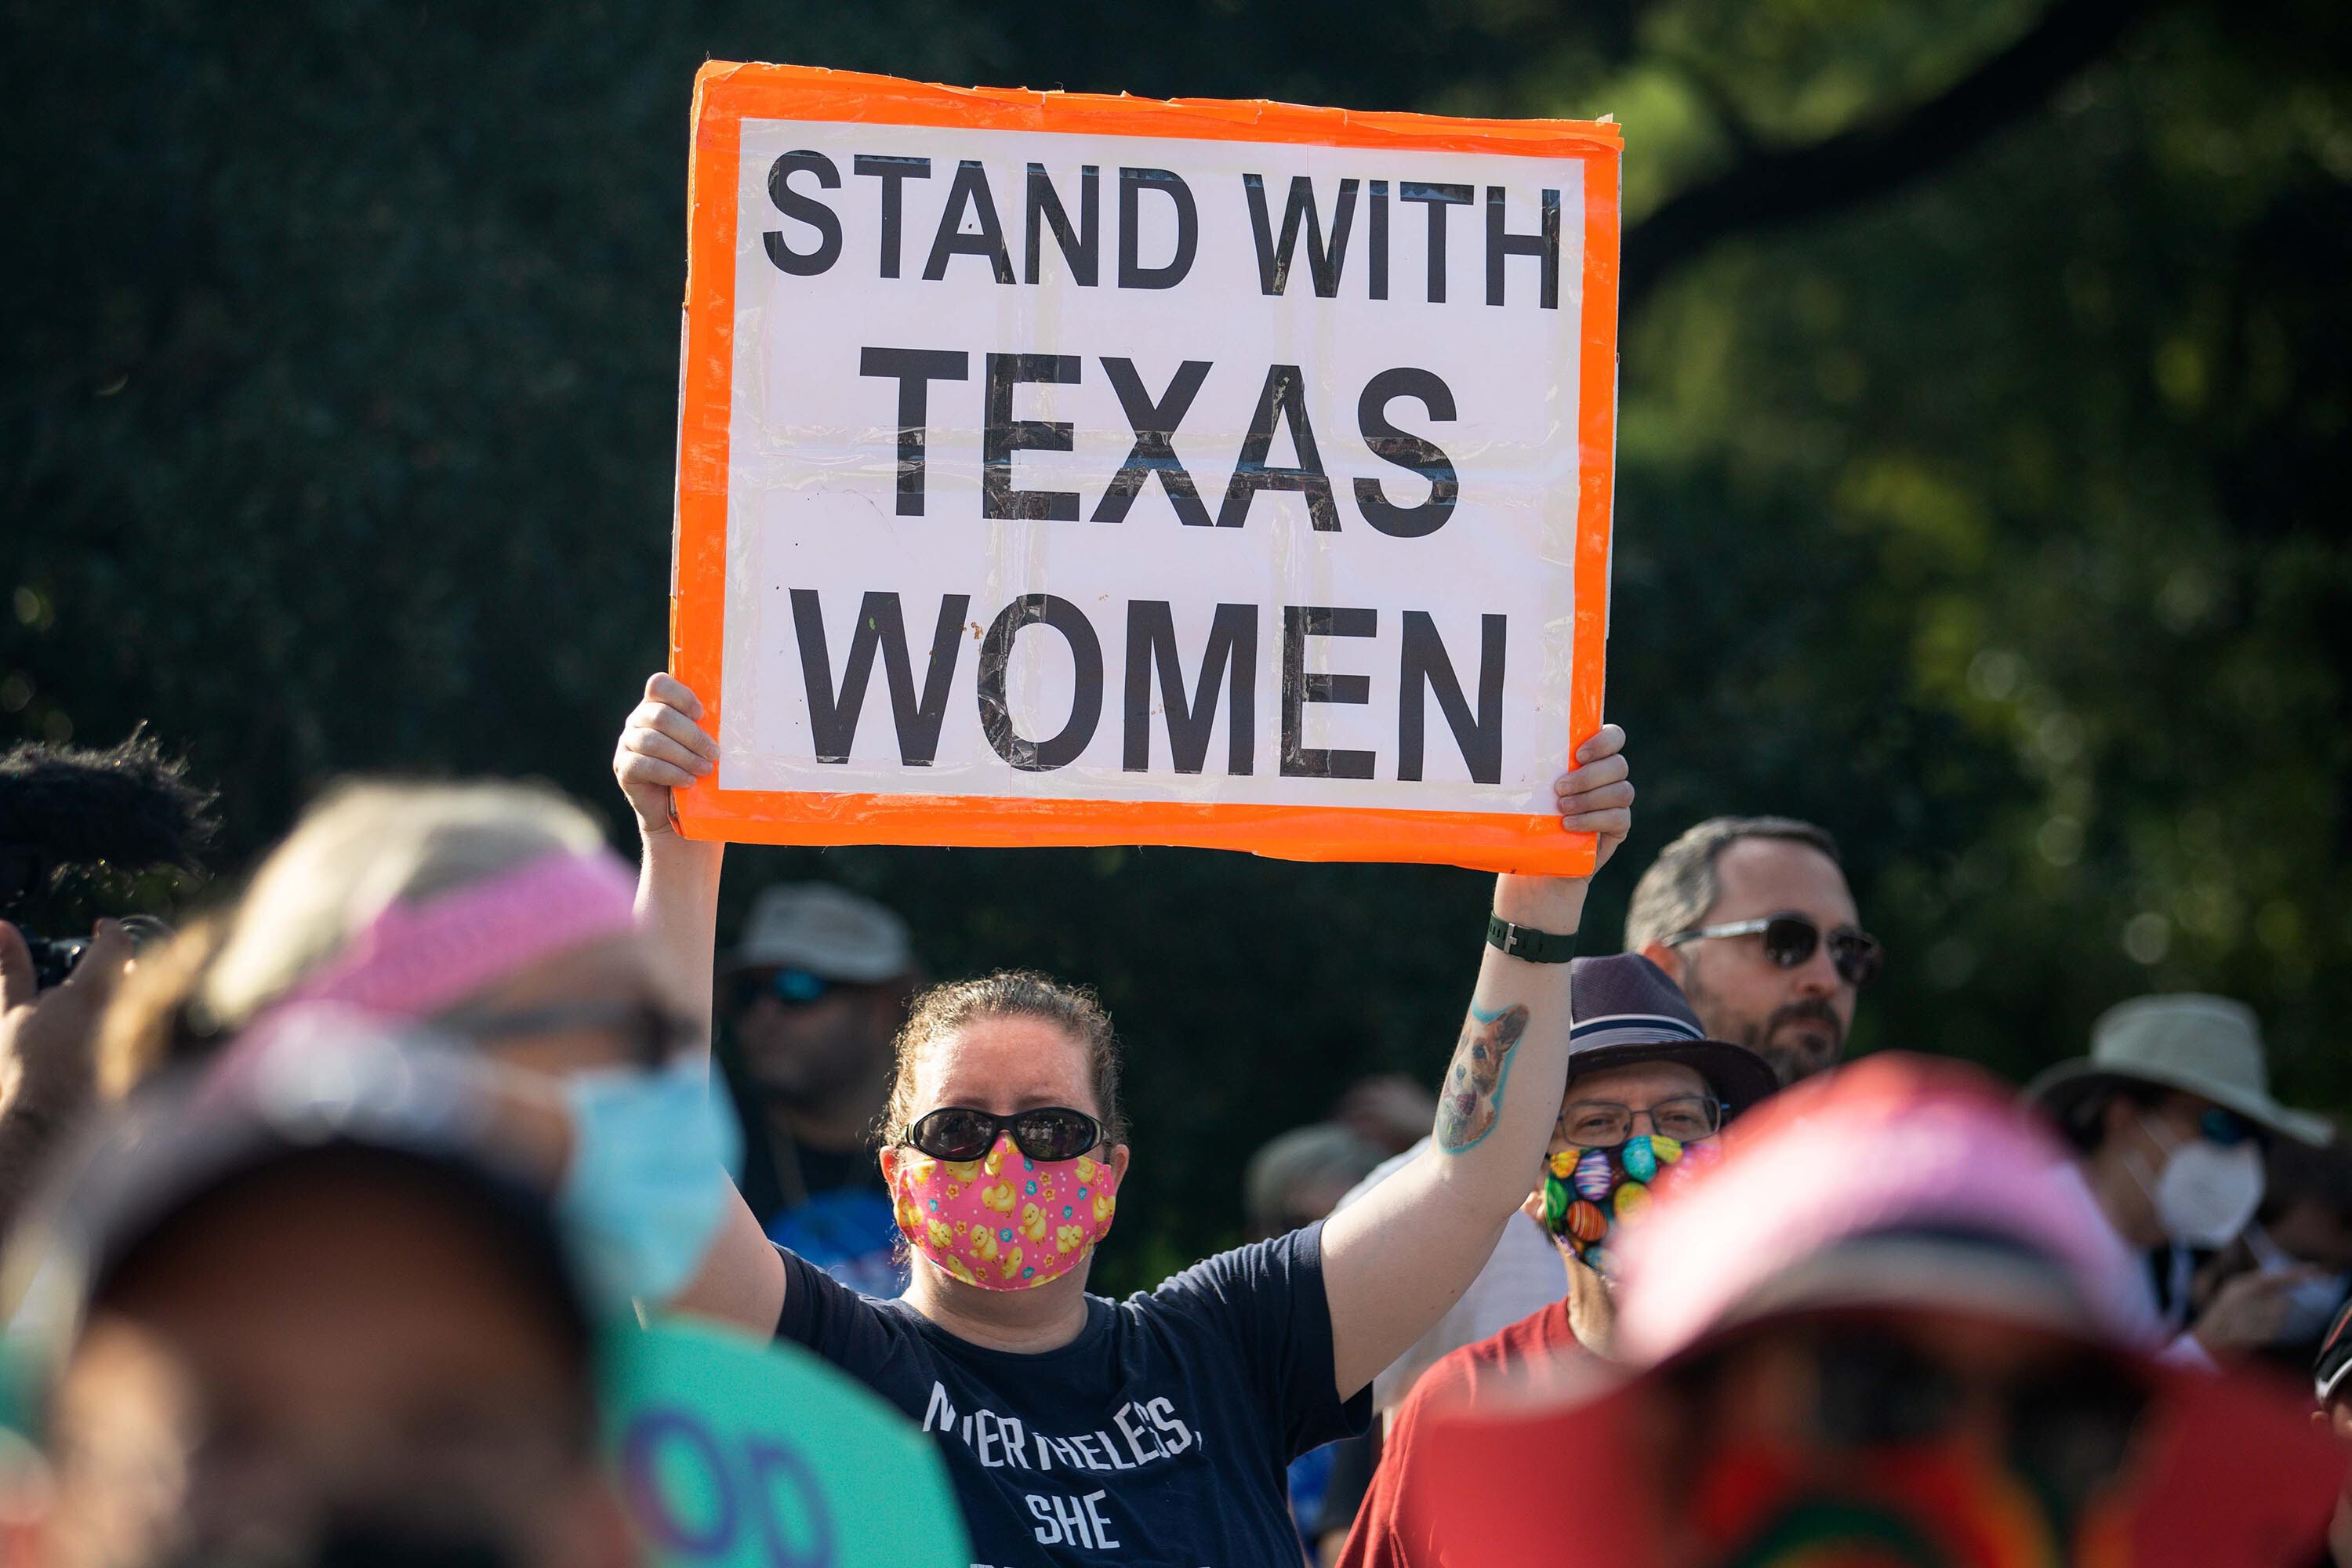 Texas abortion provider resumes procedures after sixth week of pregnancy following judge's ruling